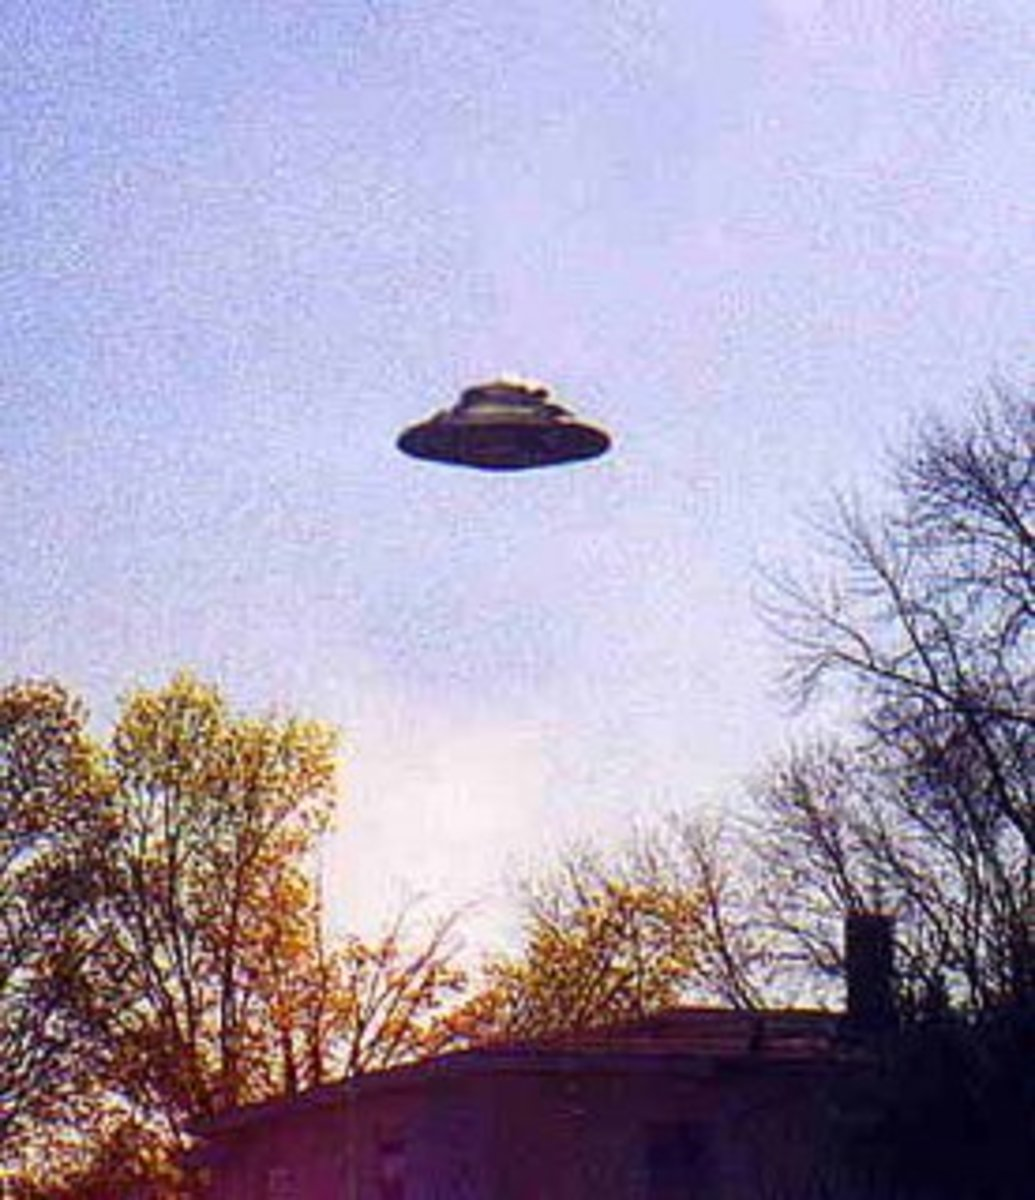 The Stars See UFOs Too: Celebrity Close Encounters